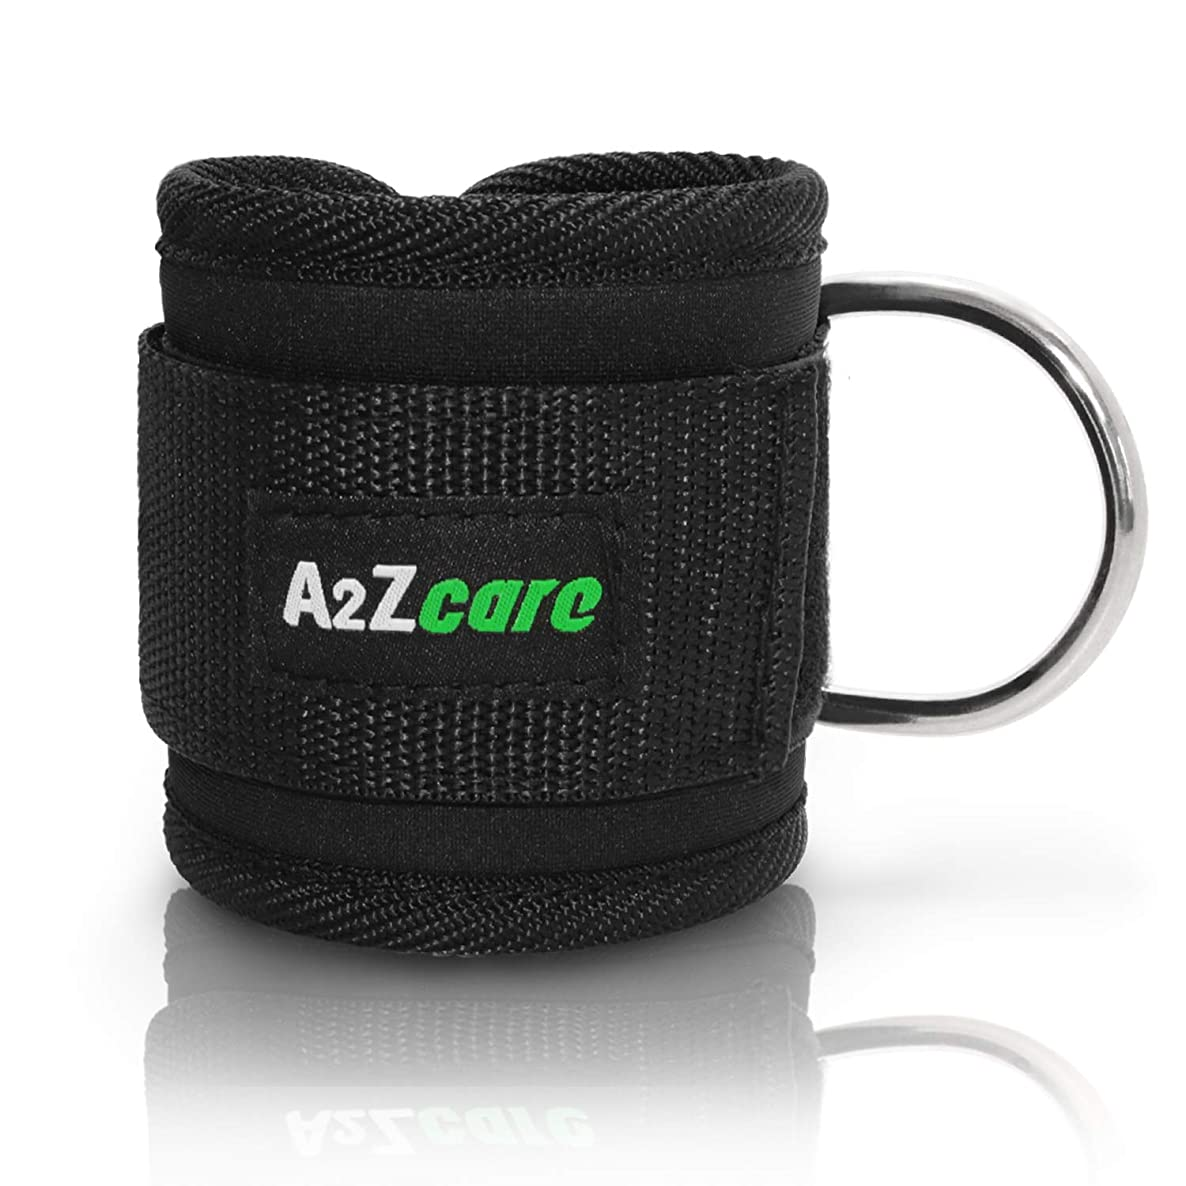 A2ZCARE Padded Ankle Strap for Cable Machines | D-Ring Ankle Cuff Gym Accessories for Workouts - Ankle Strap Cable Attachments for Leg Exercises cmsgkroycdhacqeq